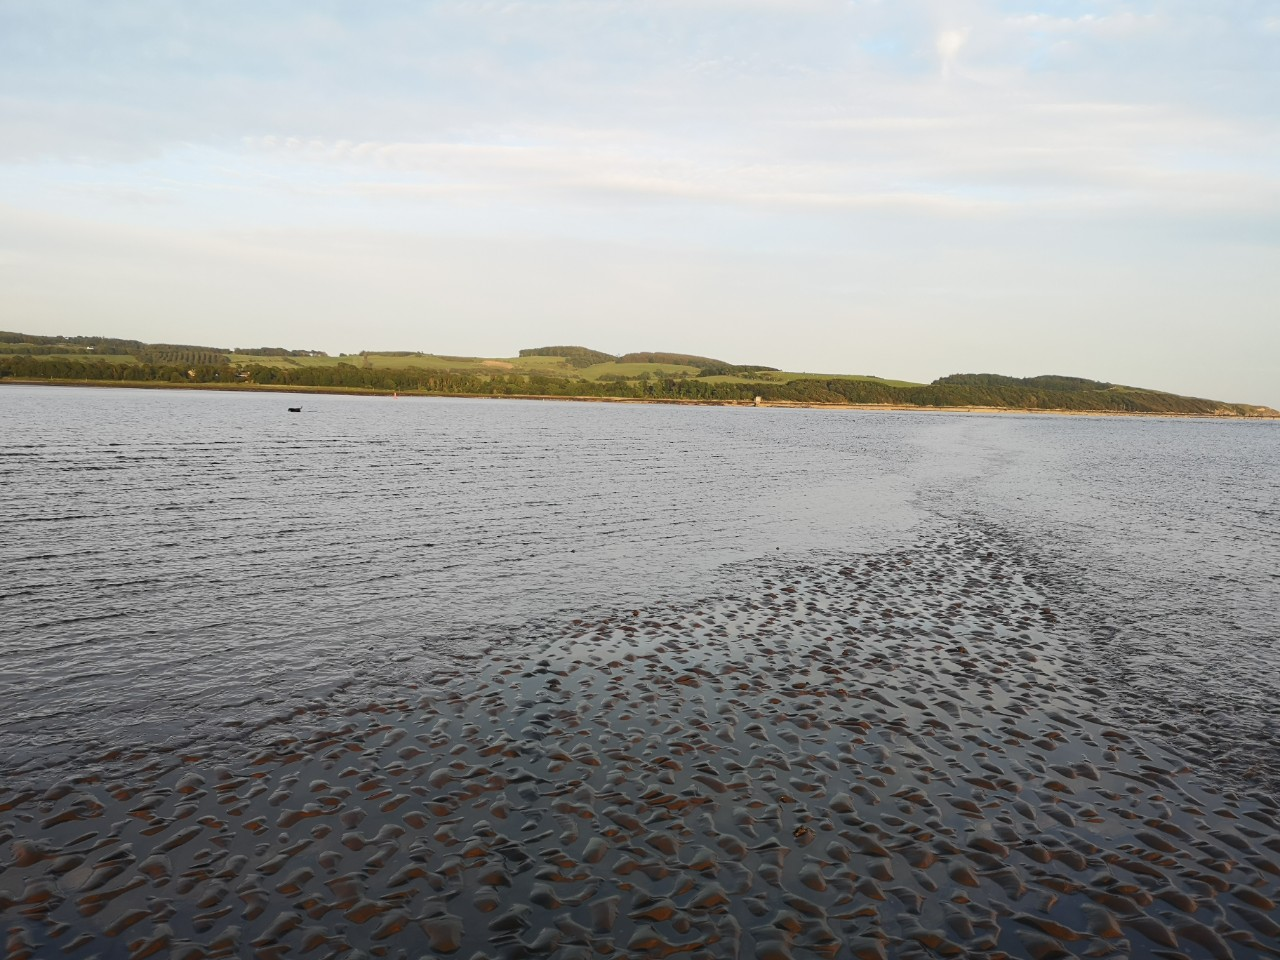 Tide coming in at Dhoon Bay Kirkcudbright with my dog fishing in the distance